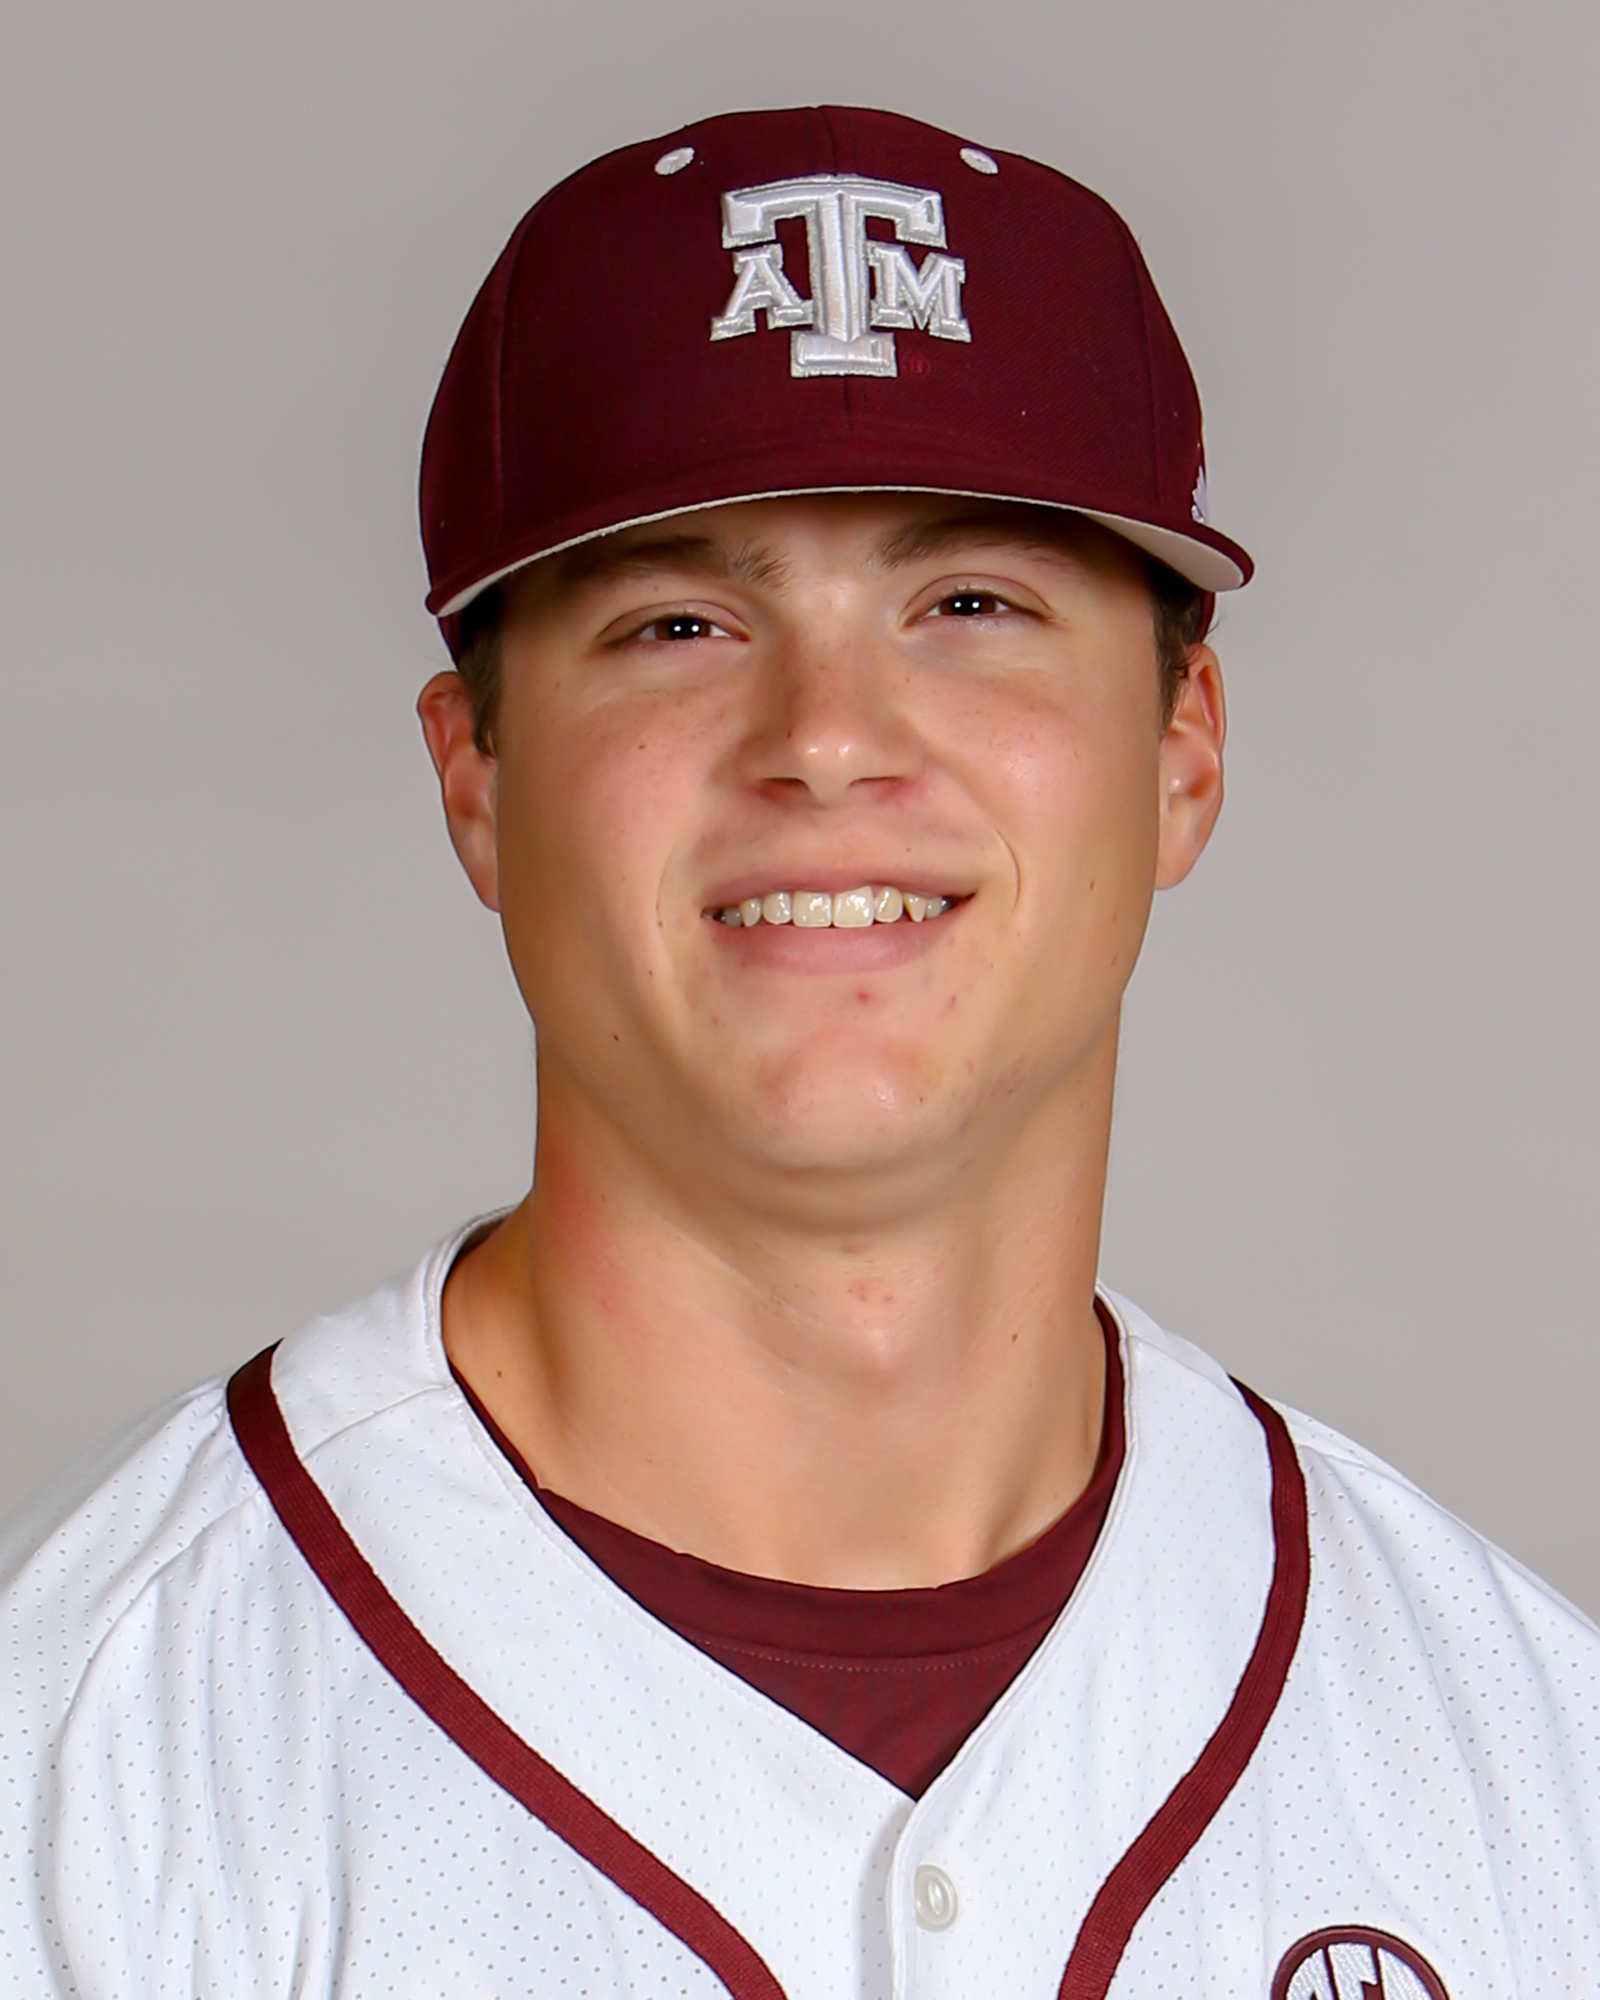 2019 Baseball Roster - Texas A&M Athletics - Home of the 12th Man